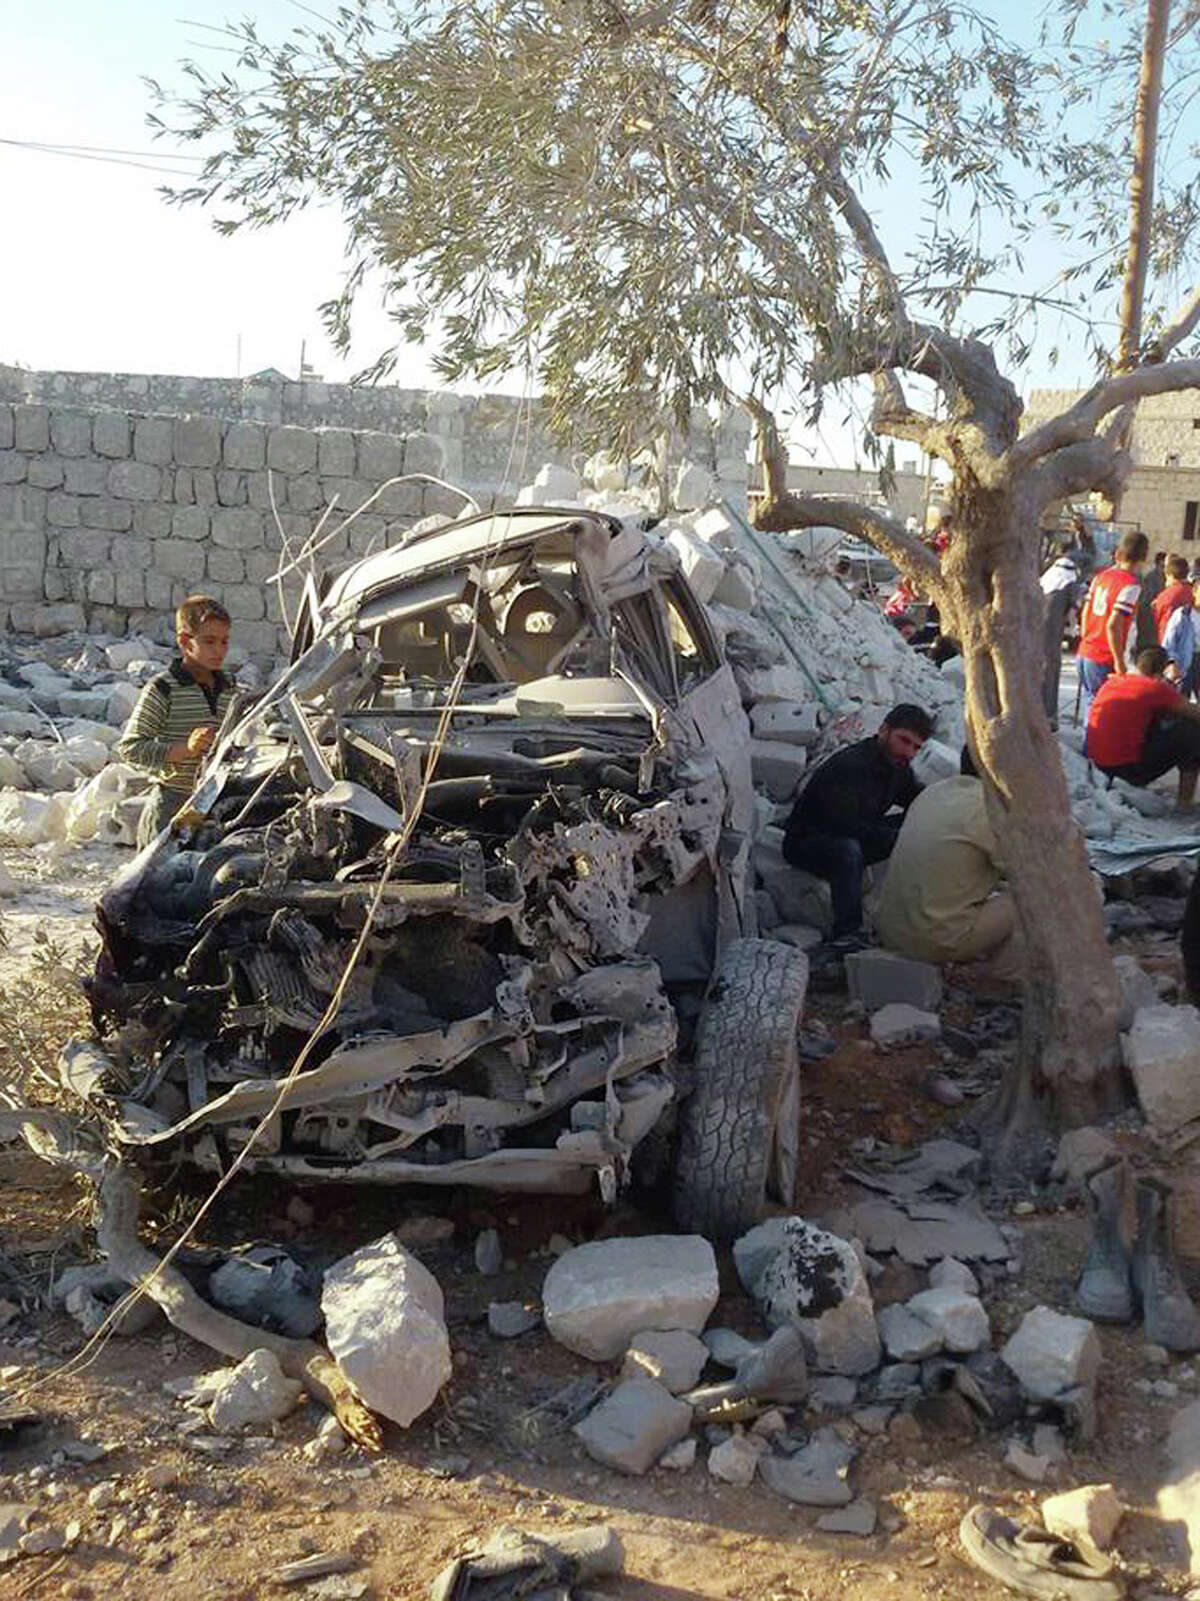 This photo provided by an anti-Bashar Assad activist group Edlib News Network (ENN), which has been authenticated based on its contents and other AP reporting, shows a Syrian boy, left, looking at a destroyed car that activists say was targeted by the coalition airstrikes, in the village of Kfar Derian, a base for the al-Qaida-linked Nusra Front, a rival of the Islamic State group, between the northern province of Aleppo and Idlib, Syria, Tuesday Sept. 23, 2014. Syria said Tuesday that Washington informed President Bashar Assad's government of imminent U.S. airstrikes against the Islamic State group, hours before an American-led military coalition pounded the extremists' strongholds across northern and eastern Syria. (AP Photo/Edlib News Network ENN)